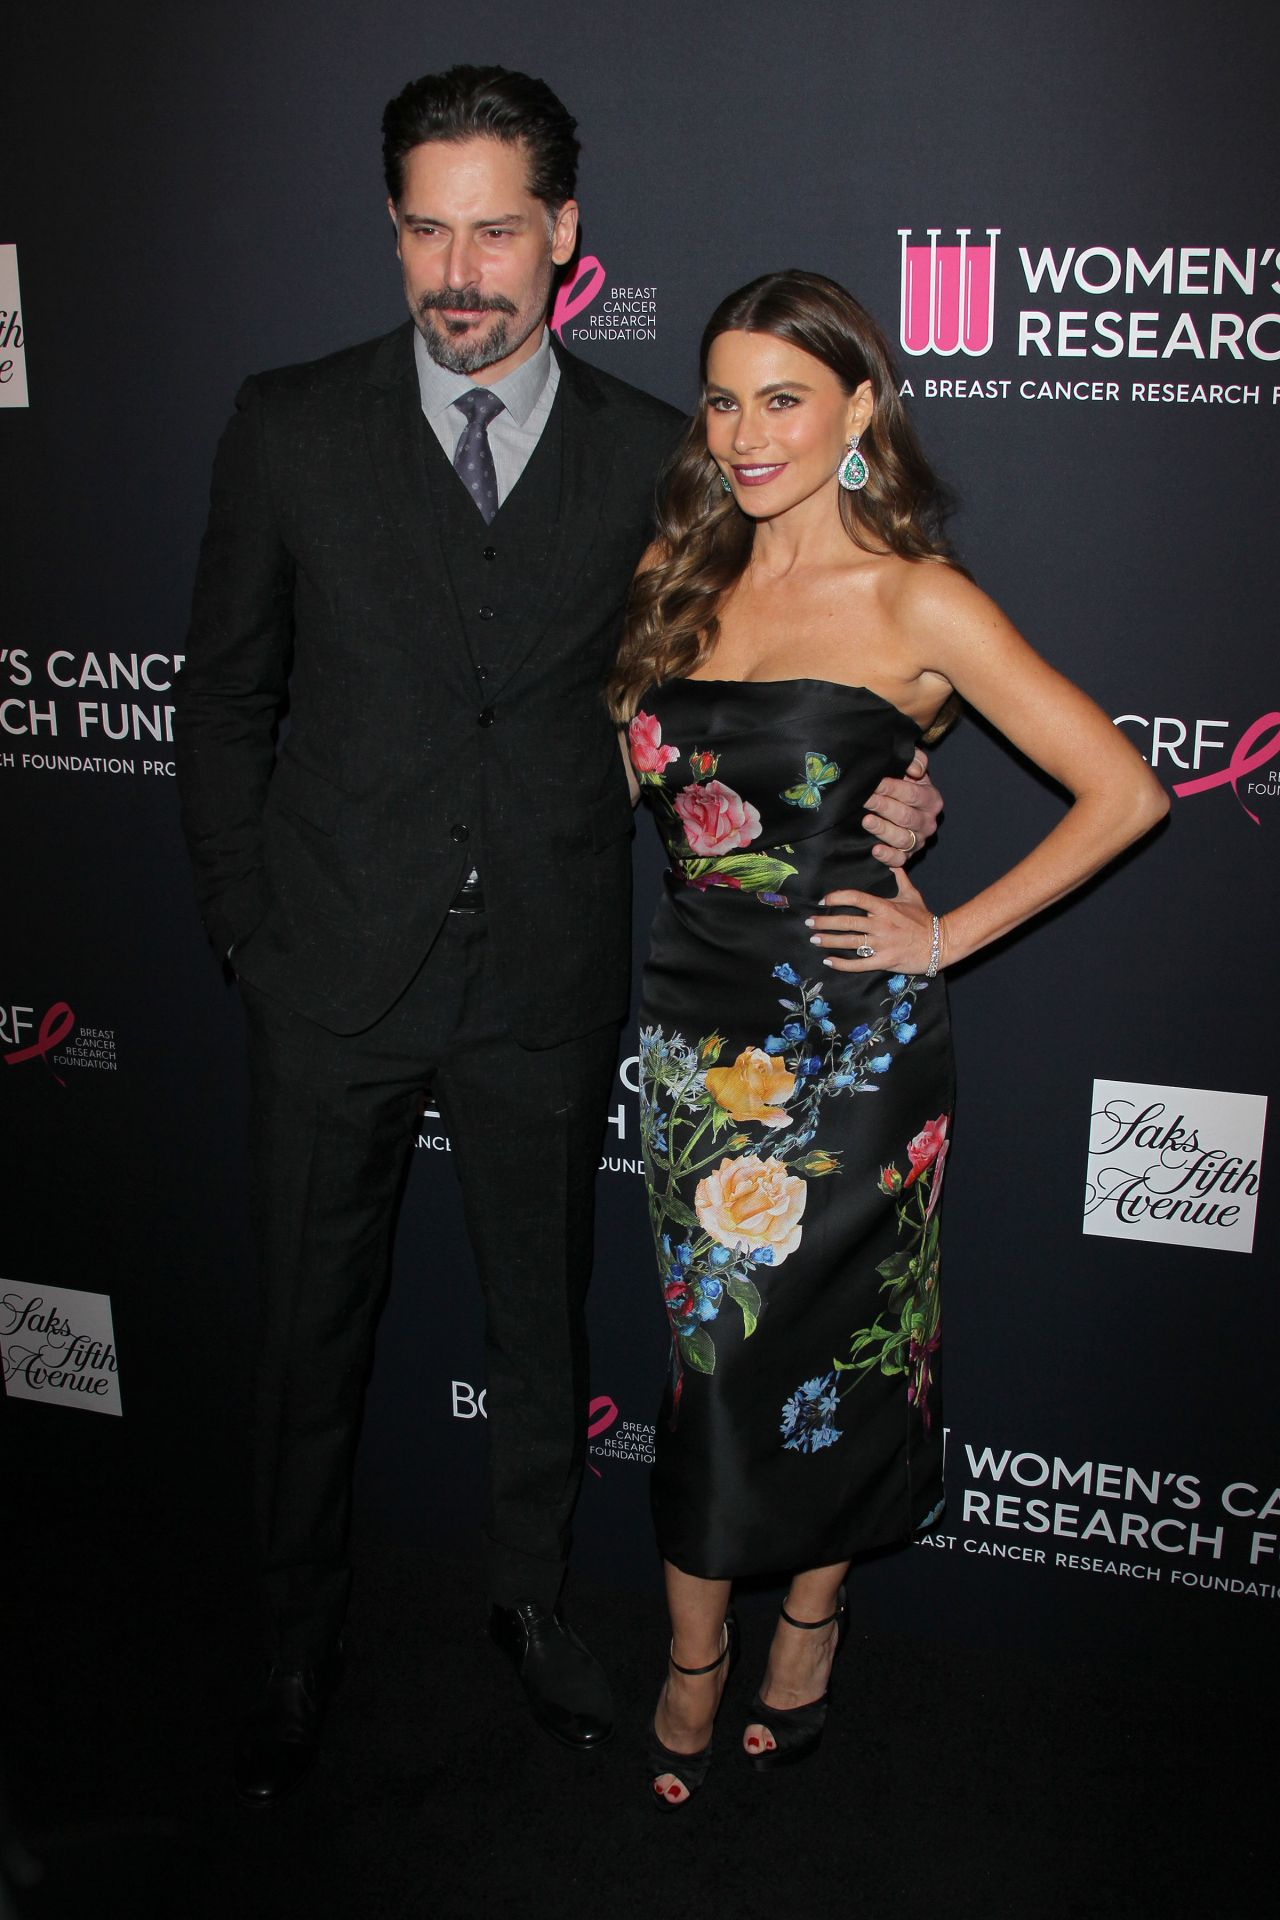 http://celebmafia.com/wp-content/uploads/2018/02/sofia-vergara-the-womens-cancer-research-fund-hosts-an-unforgettable-evening-in-la-02-27-2018-6.jpg